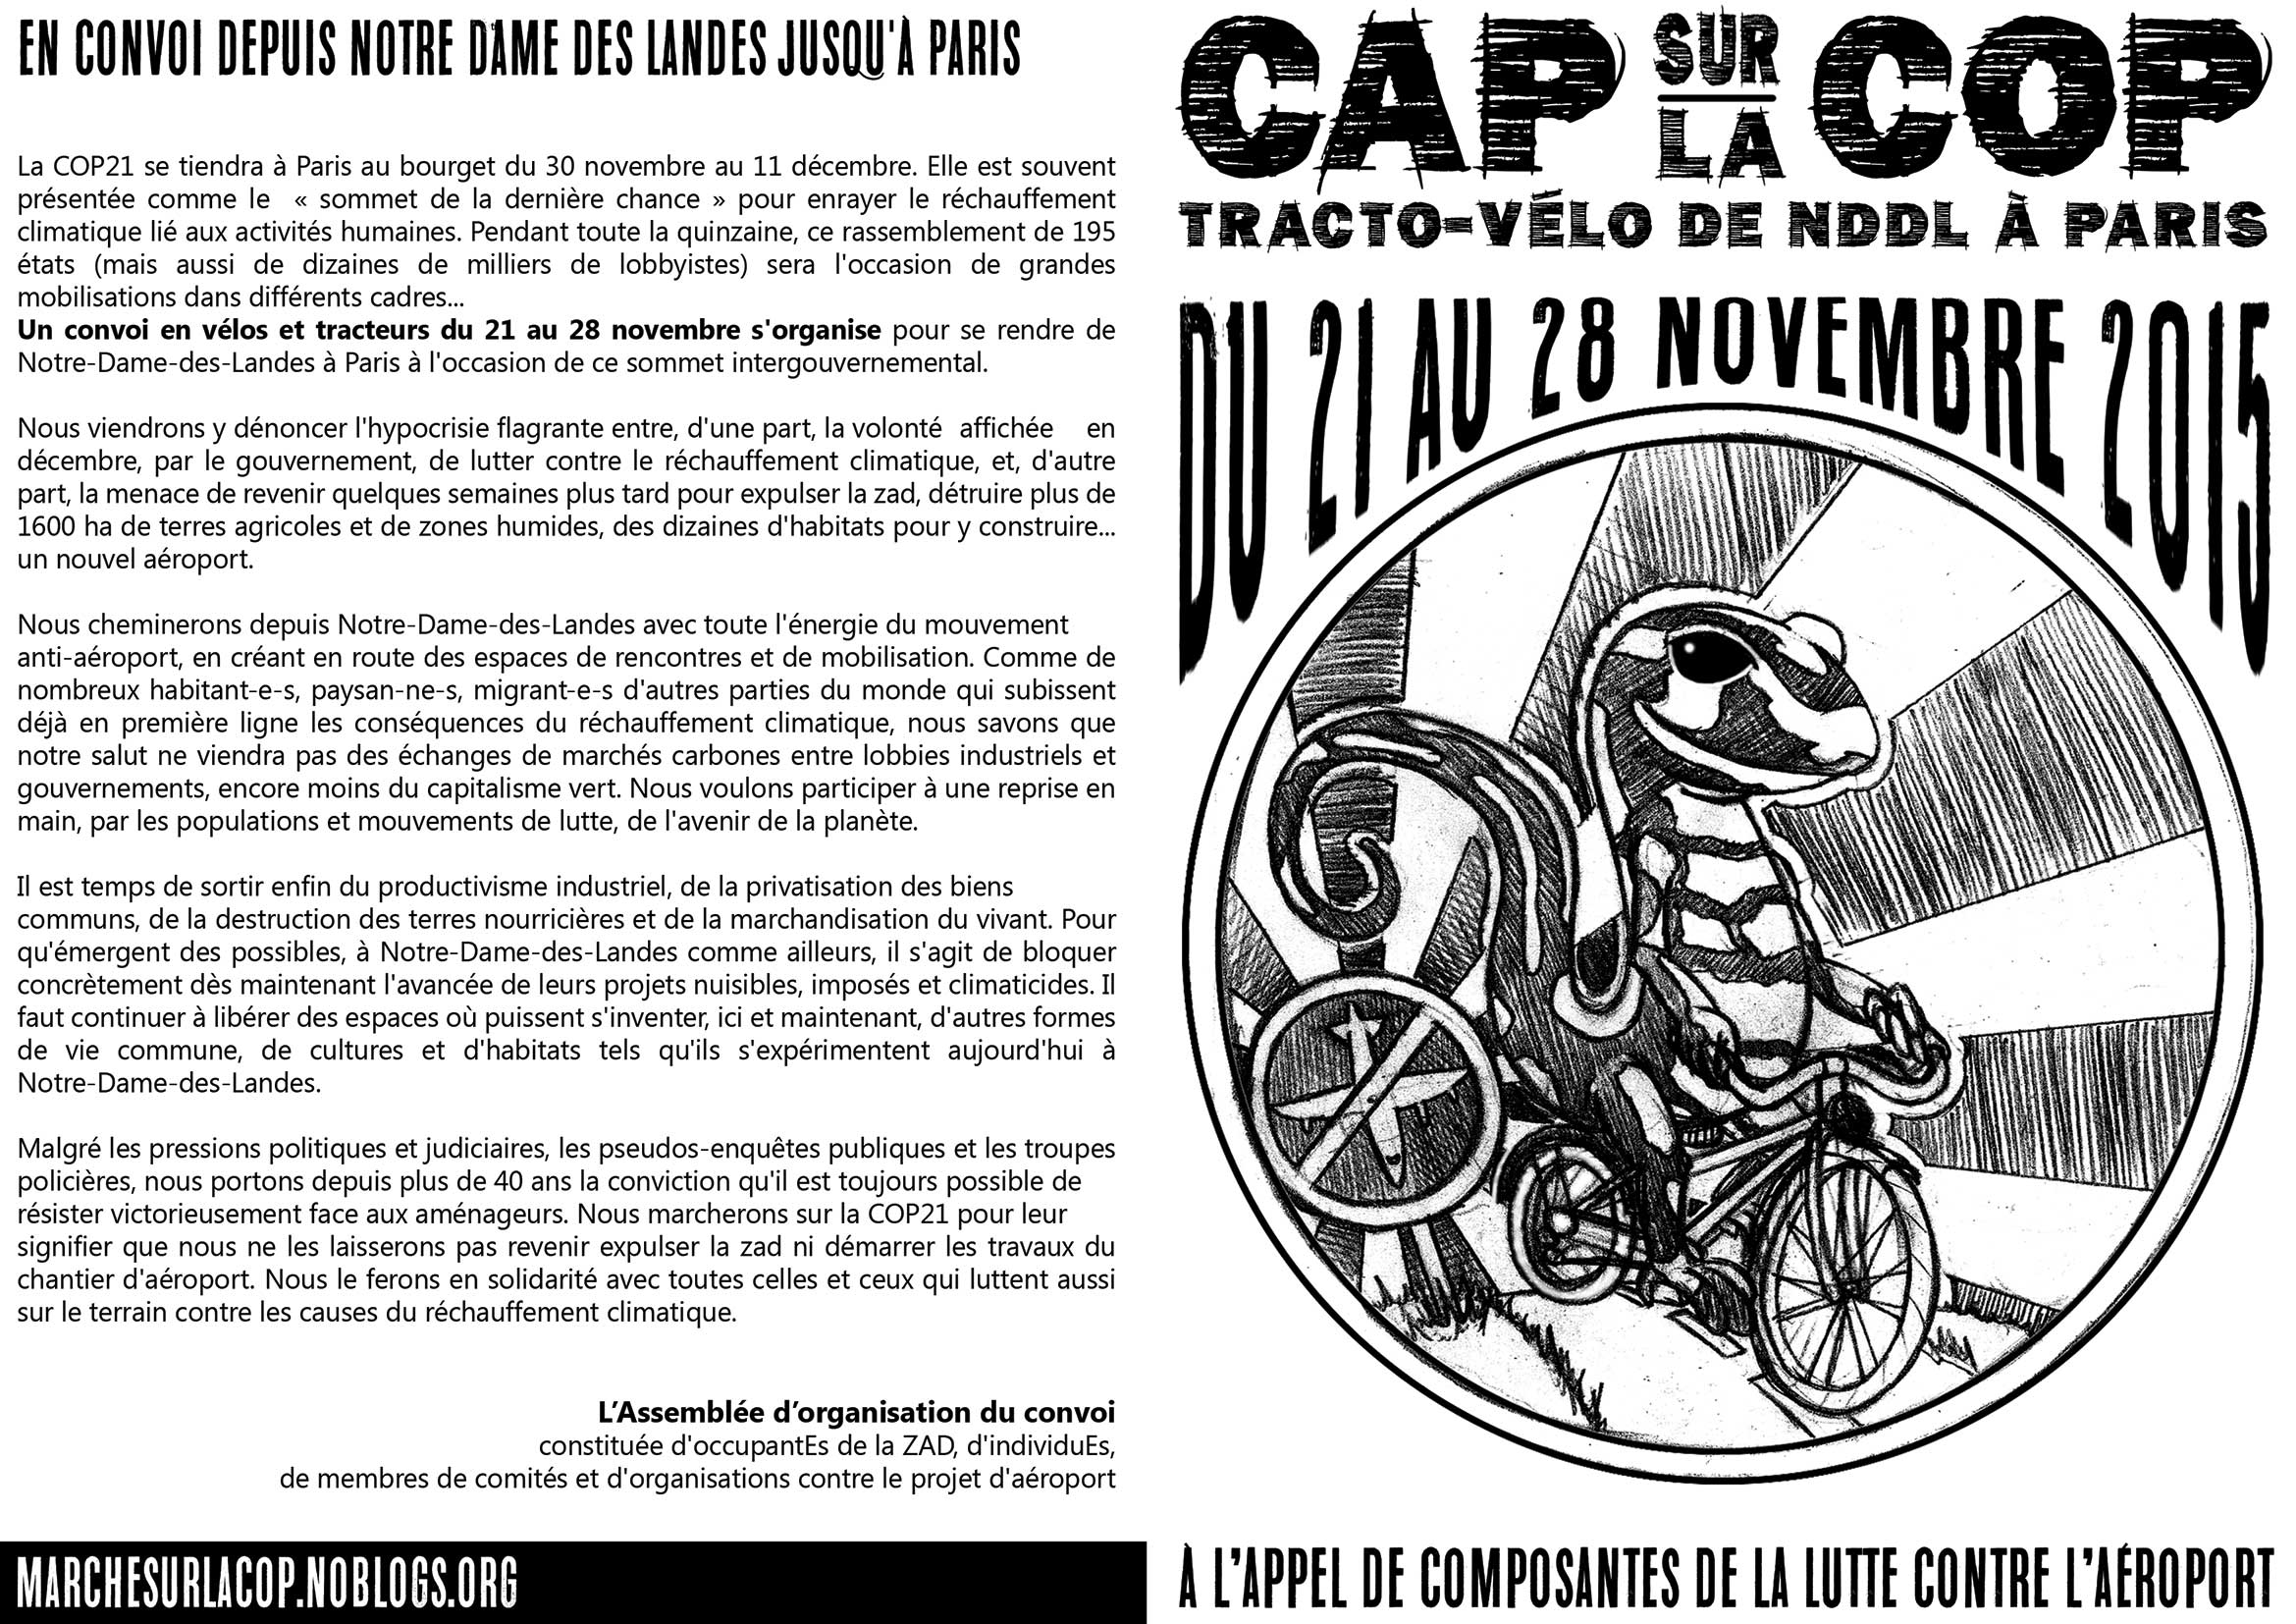 http://marchesurlacop.noblogs.org/files/2015/10/fly-convoi-recto.jpg